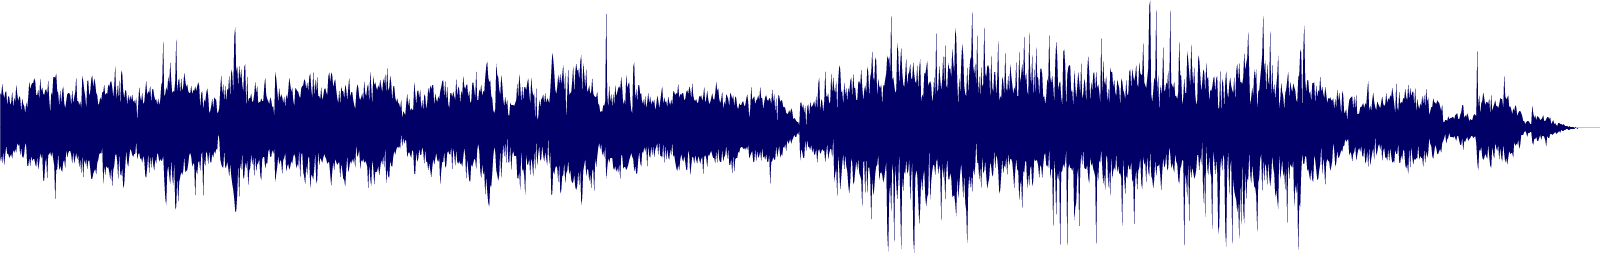 waveform of track #154691